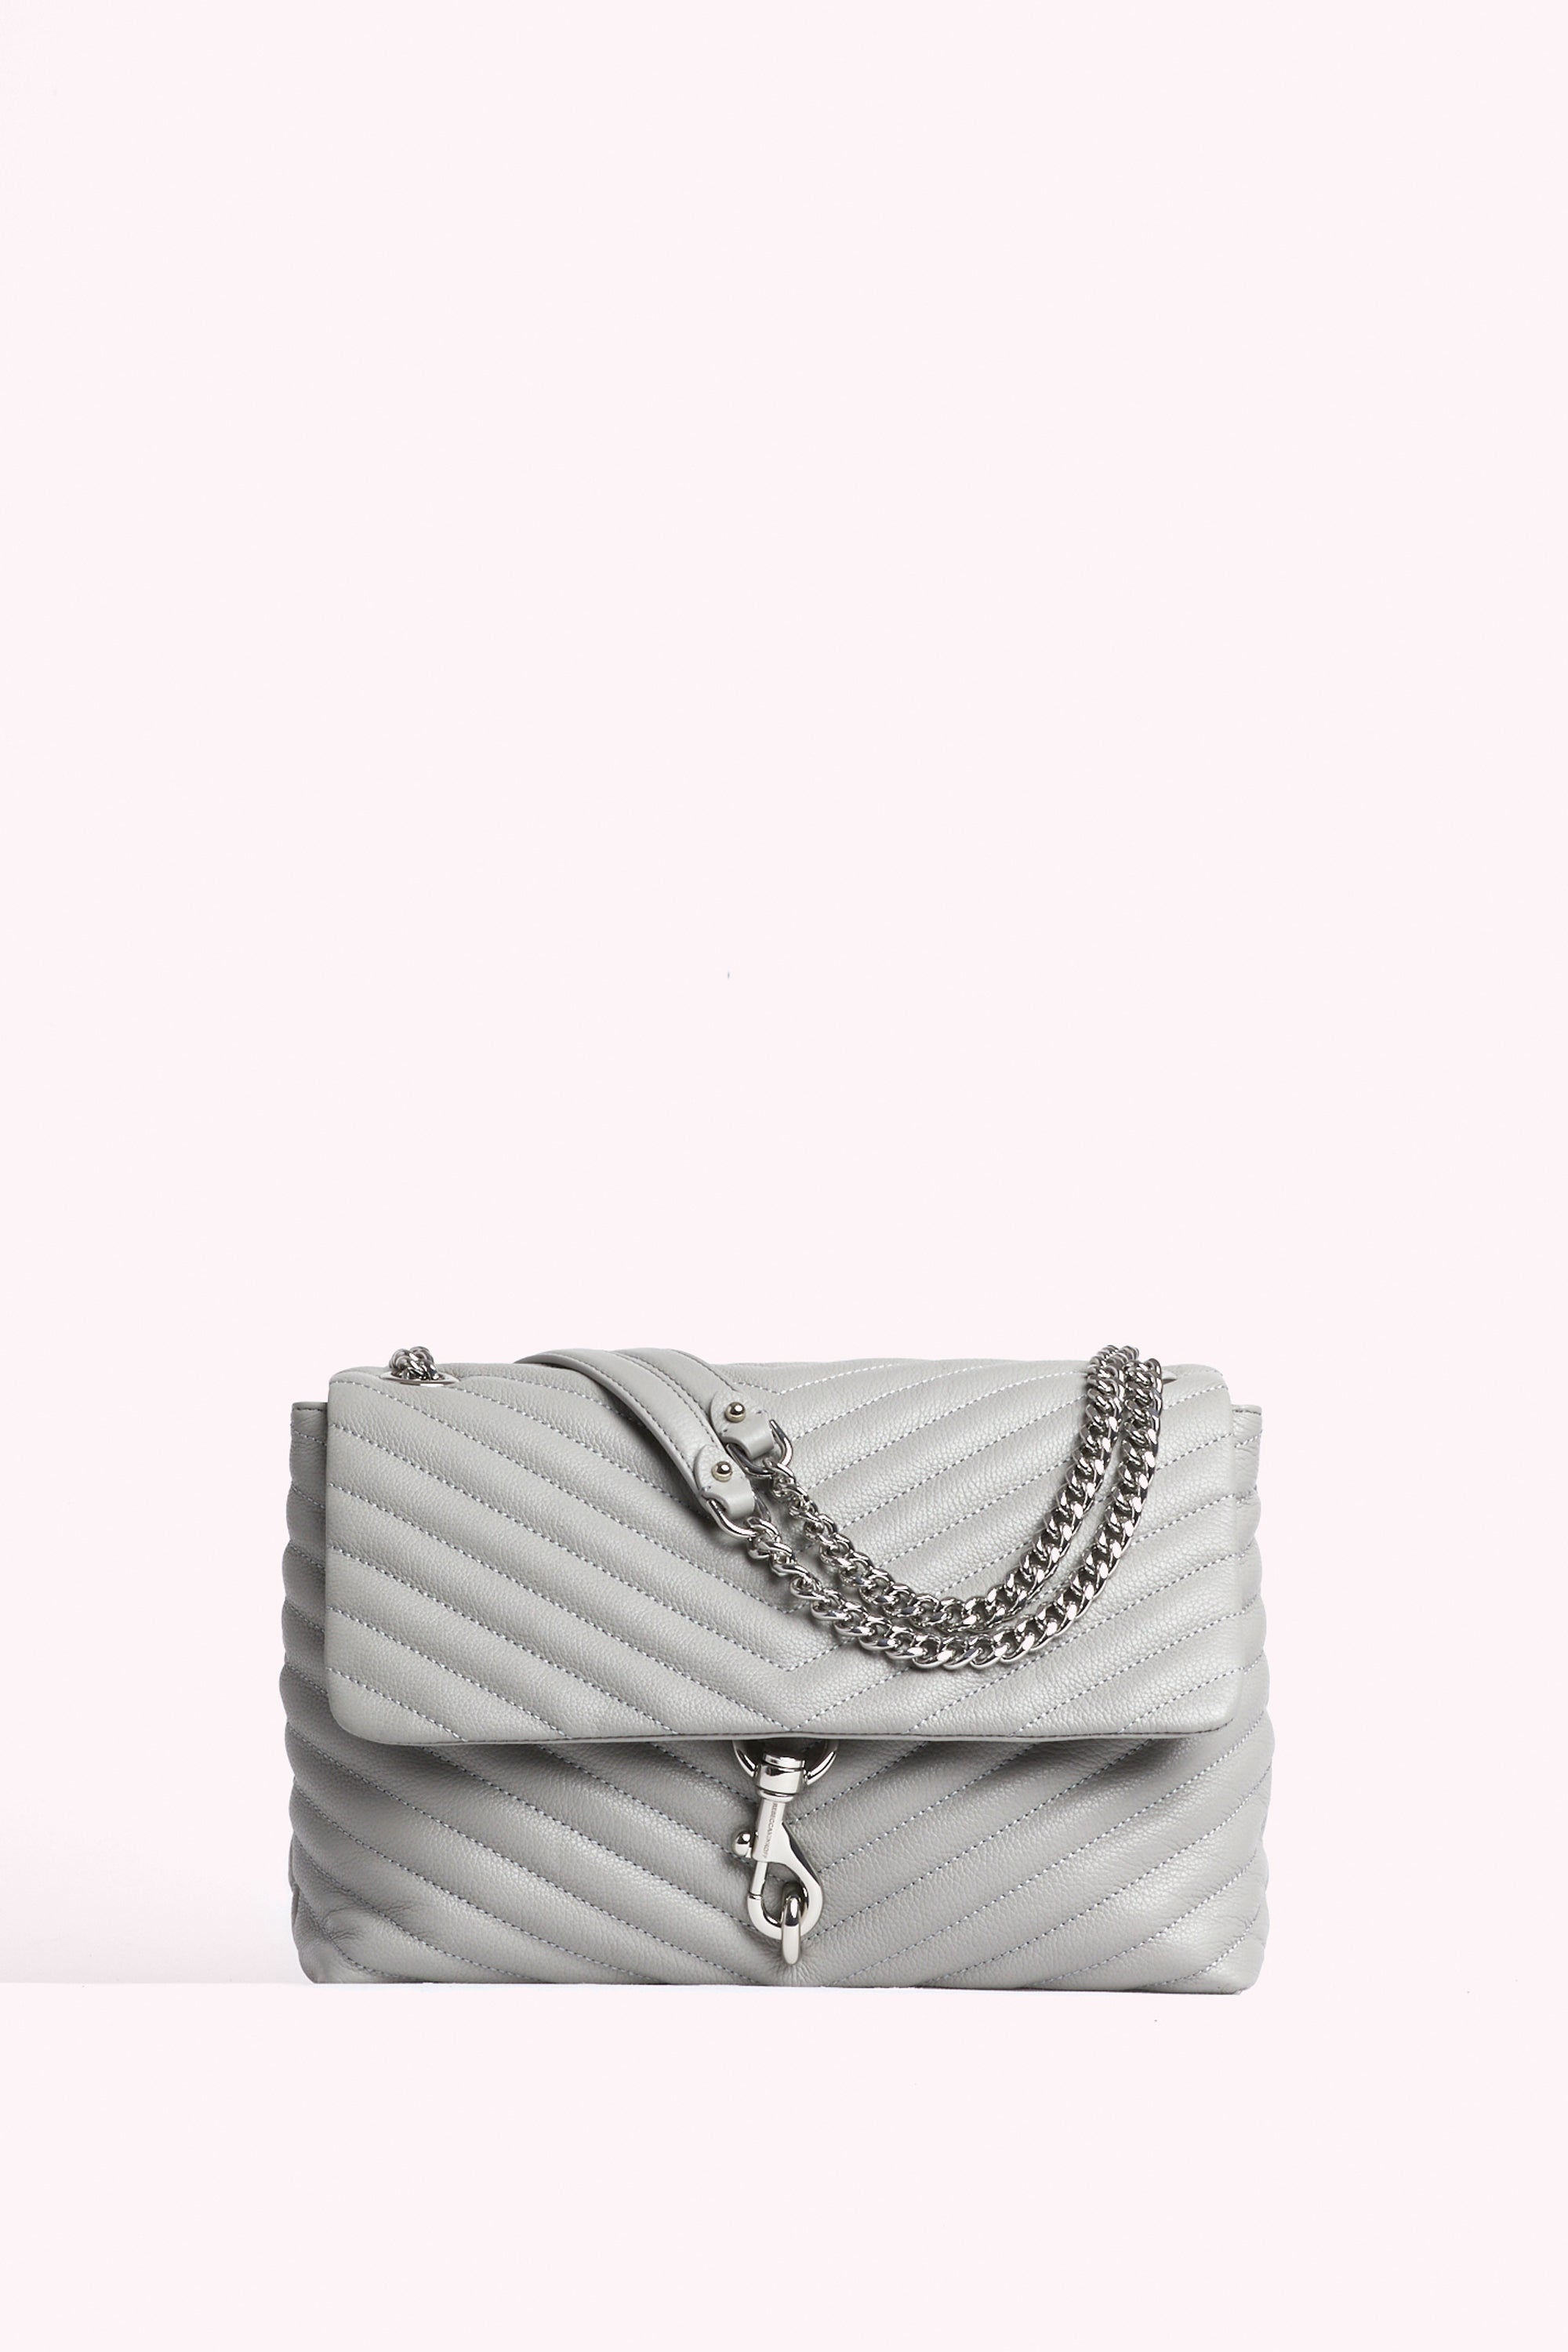 Rebecca-Minkoff Edie Flap Shoulder Bag